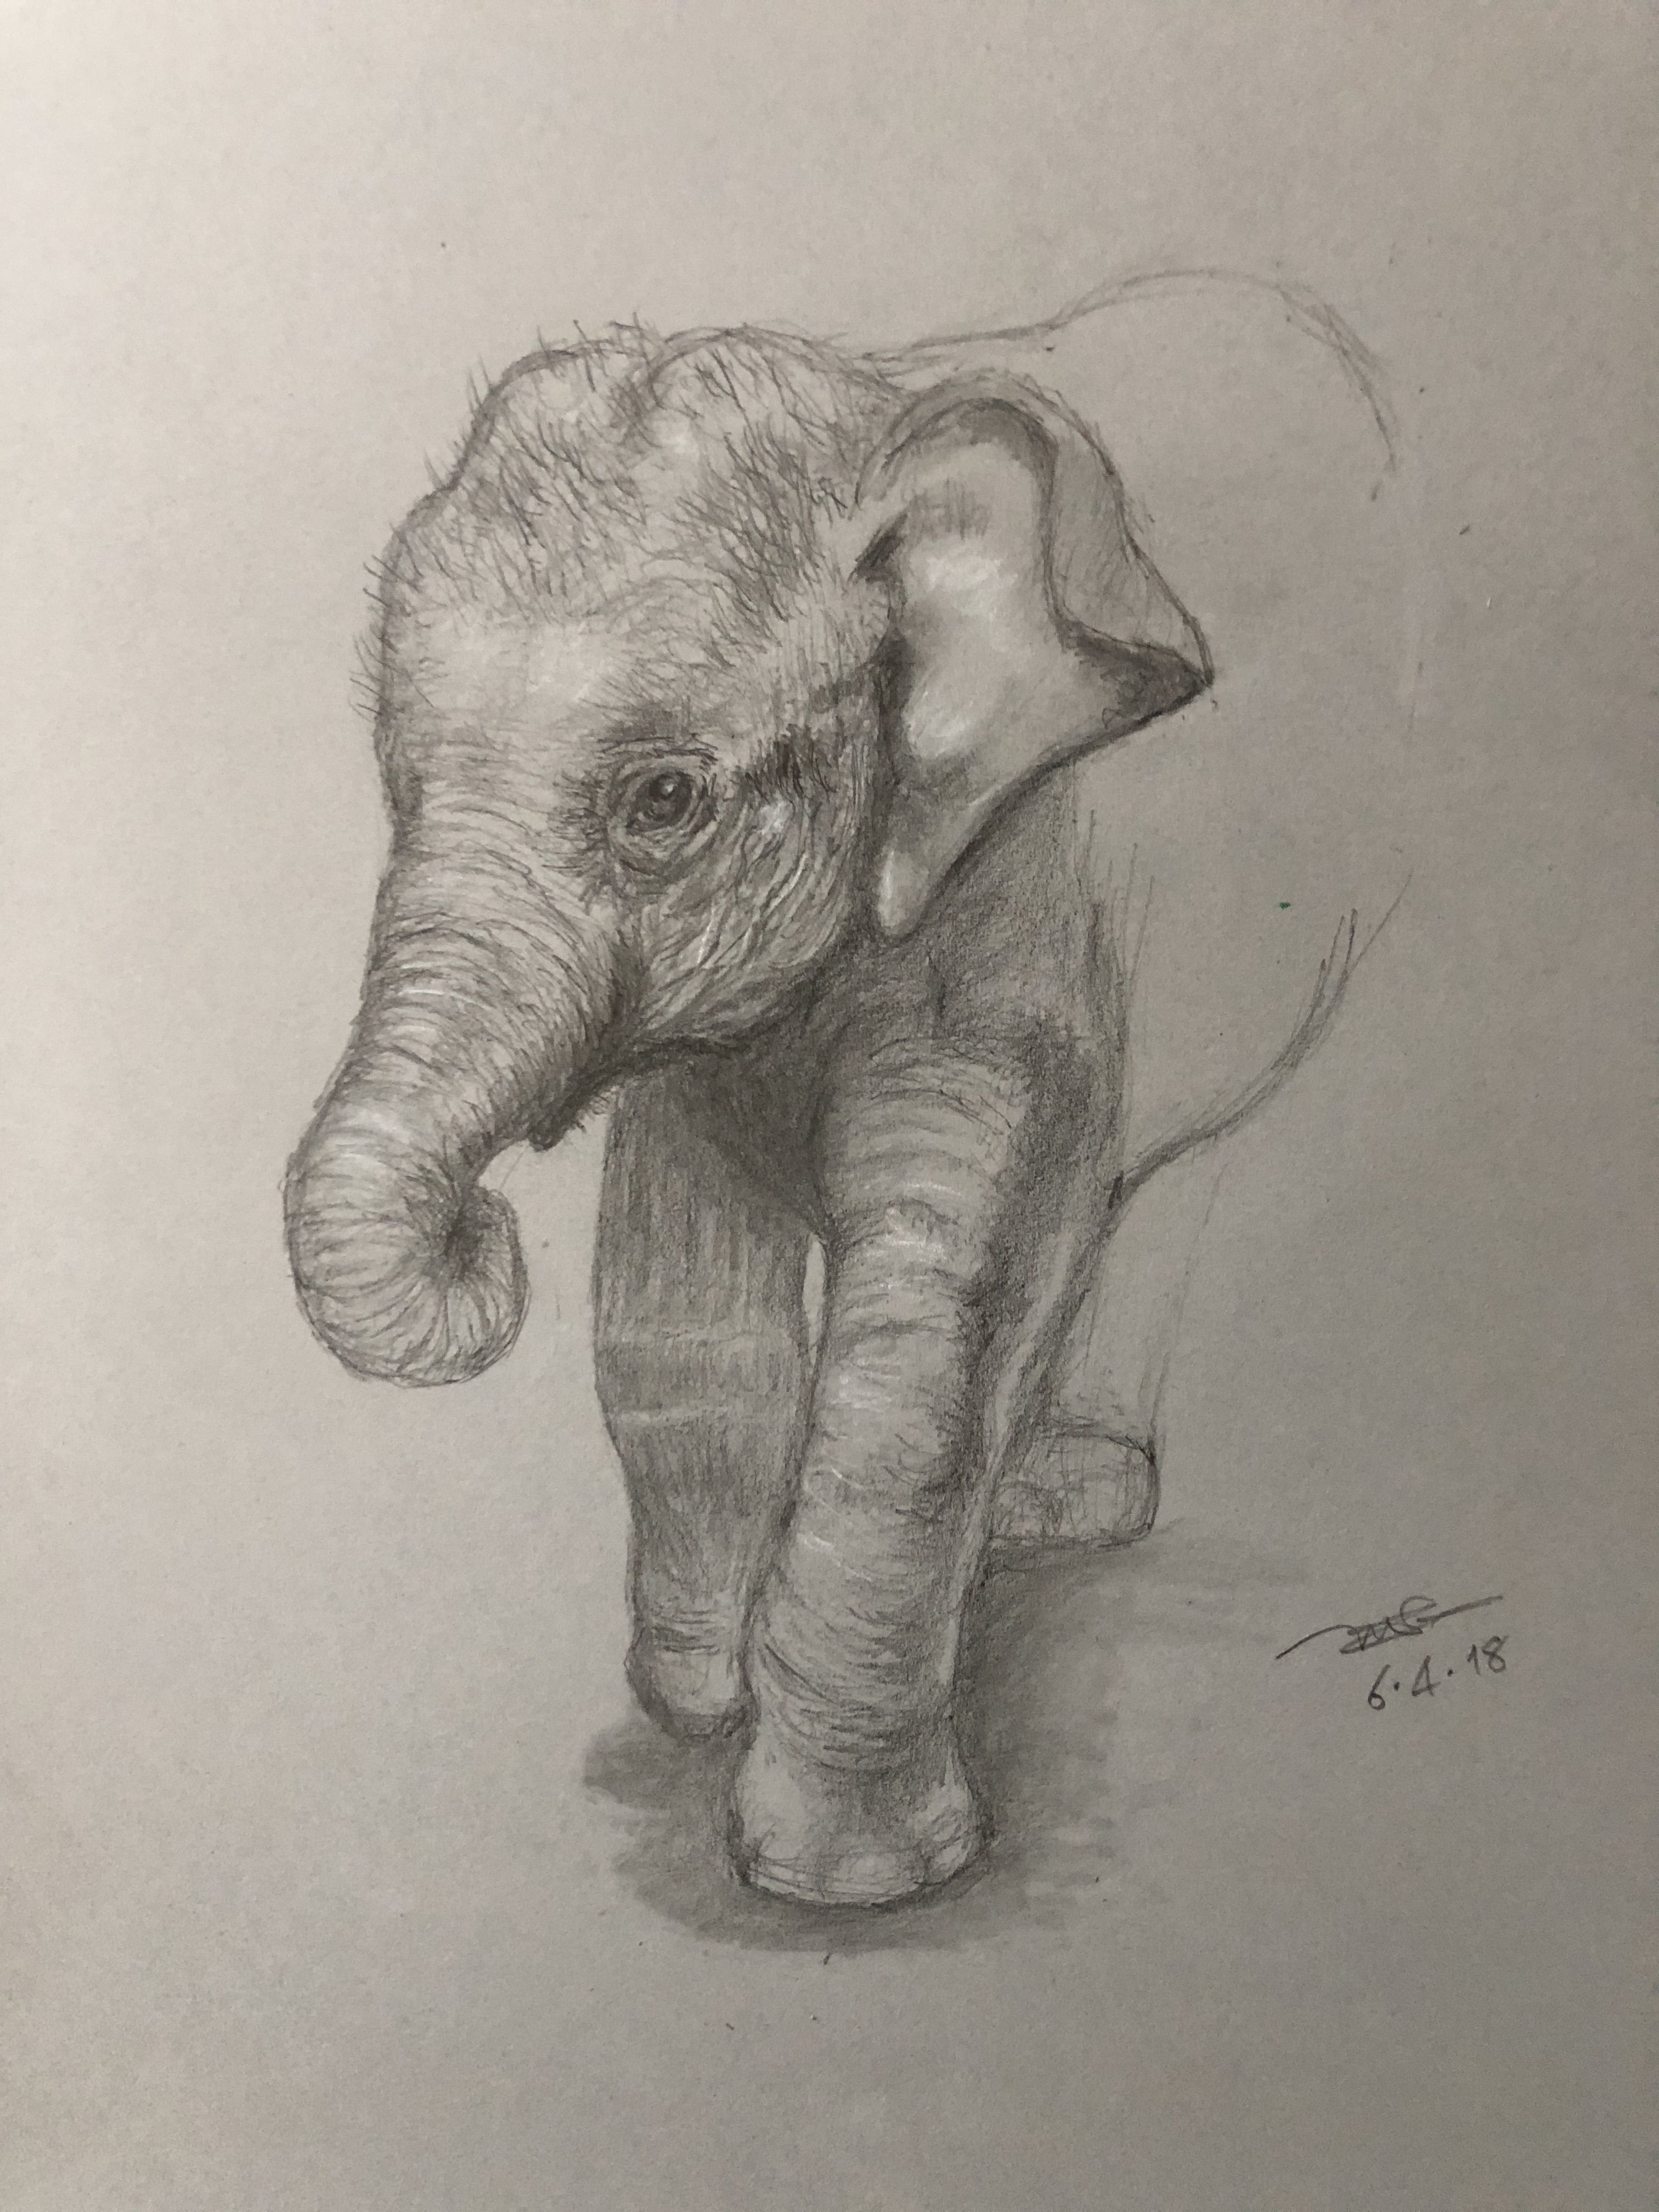 Beautiful pencil drawing artwork pencil drawings of animals sketches of animals elephant drawings